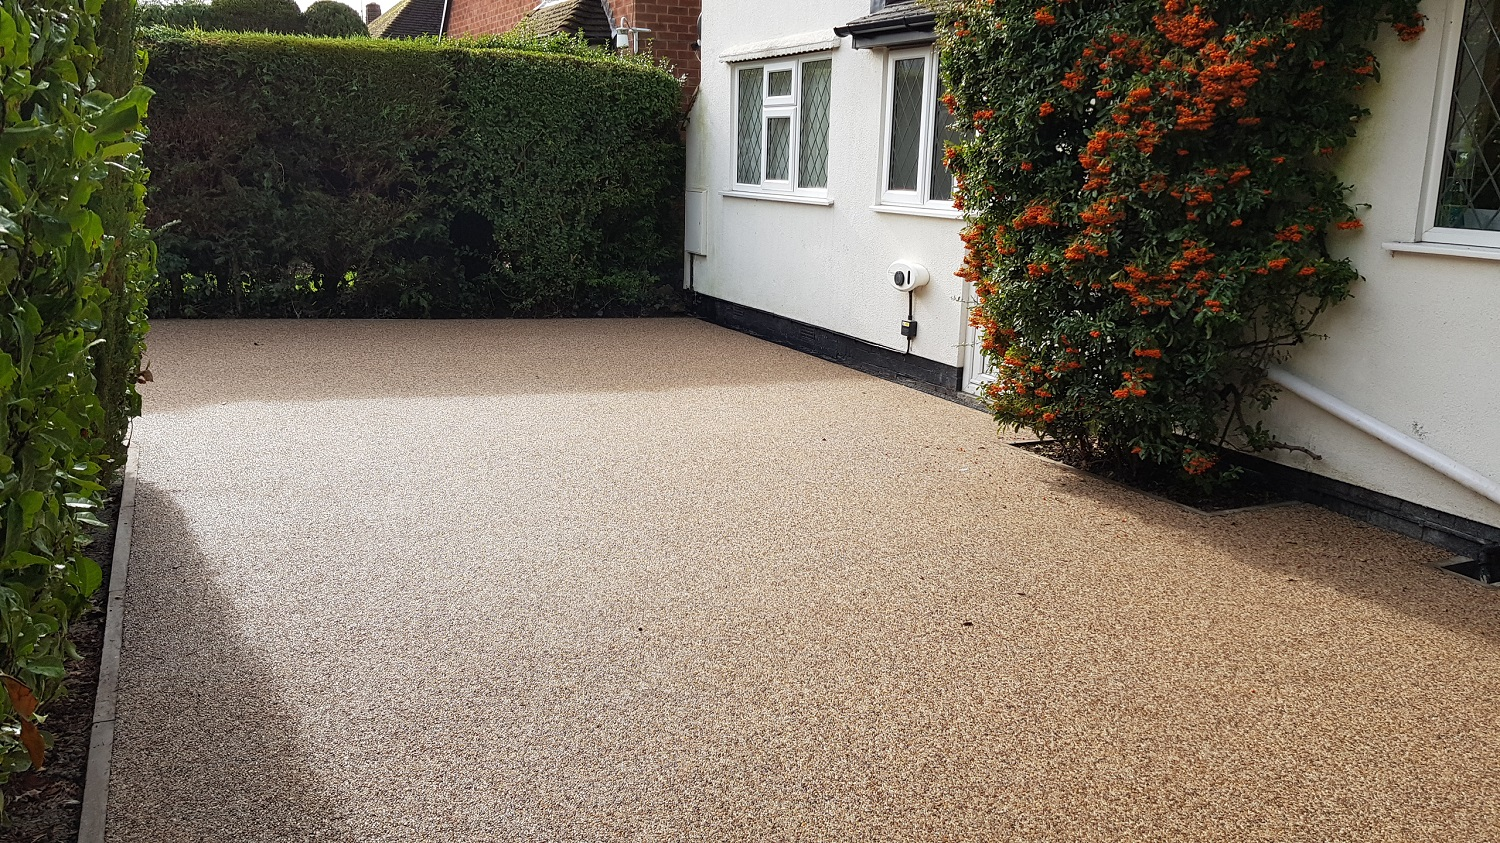 R28 - Milk Chocolate Mix Resin Bound Driveway Surfacing at Somersall in Chesterfield